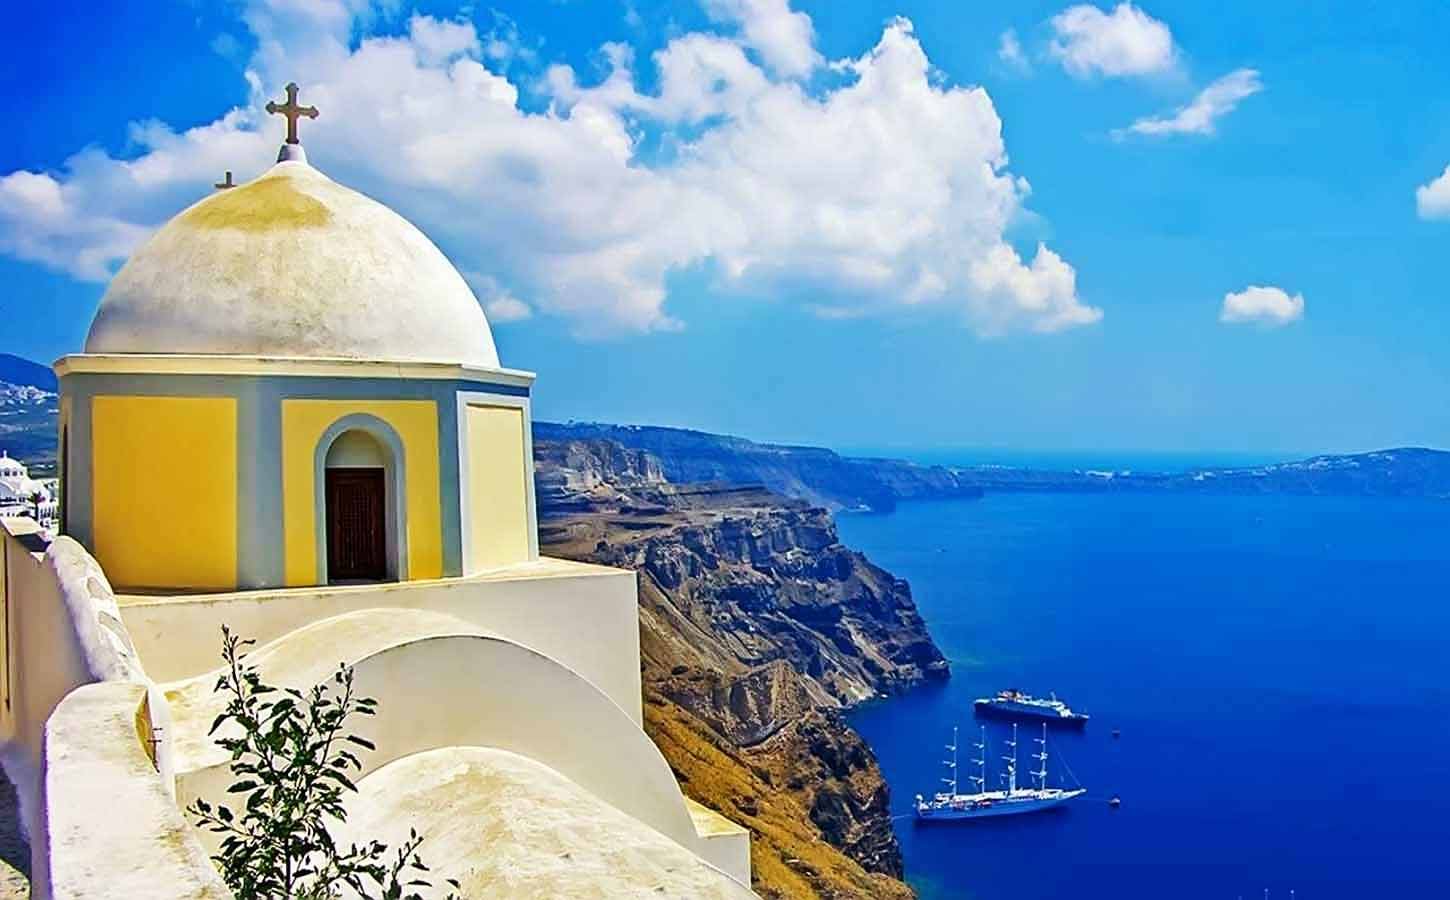 santorini-magical-the-most-romantic-island-on-earth.-diamond-events-planning-services